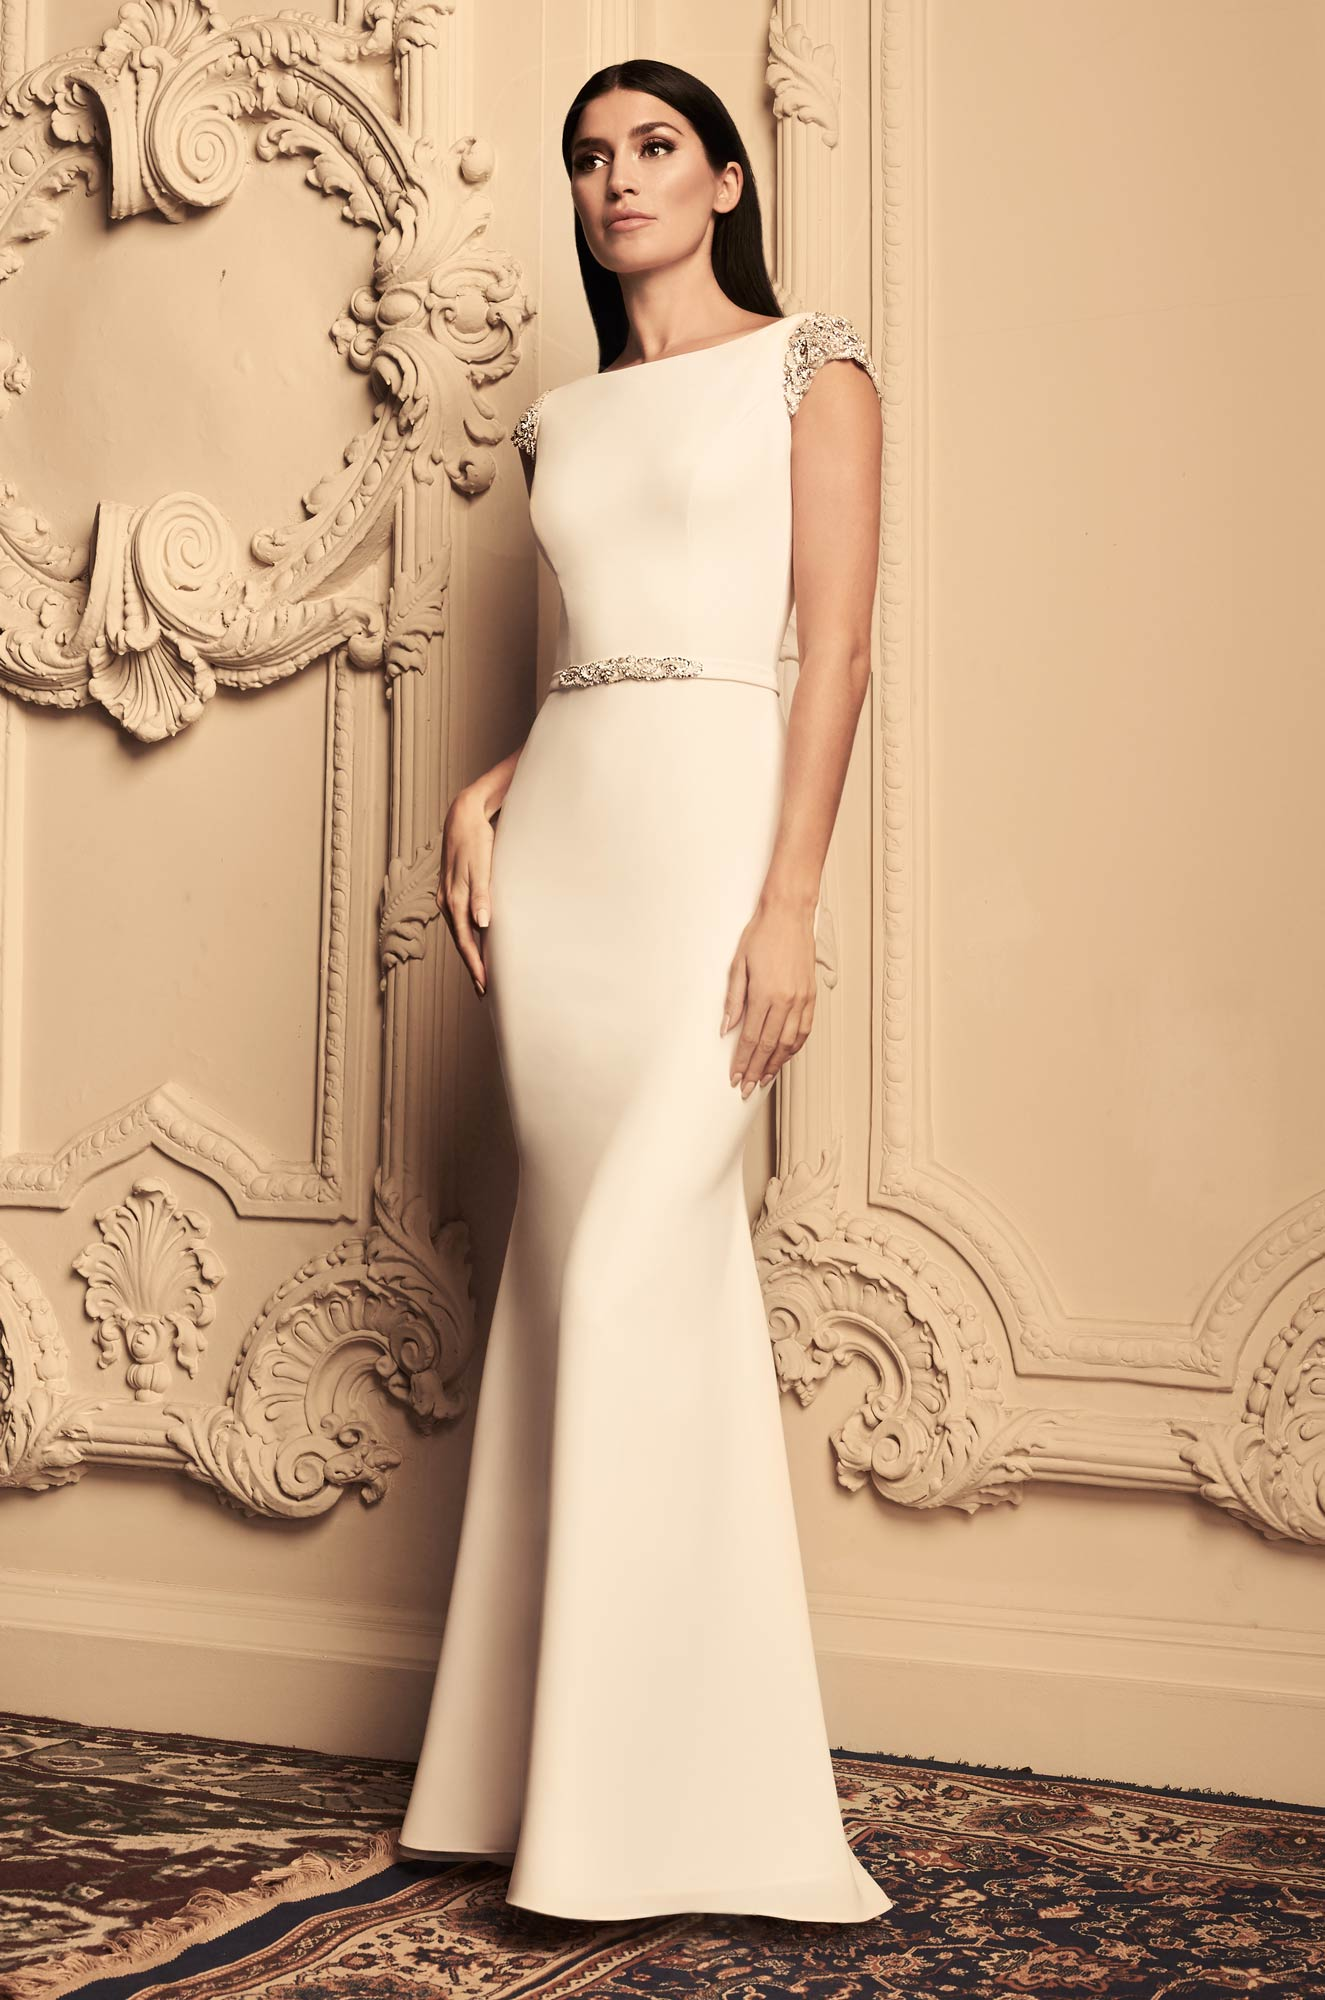 Mira Couture Paloma Blanca 4807 Wedding Dress Bridal Gown Chicago Boutique Front